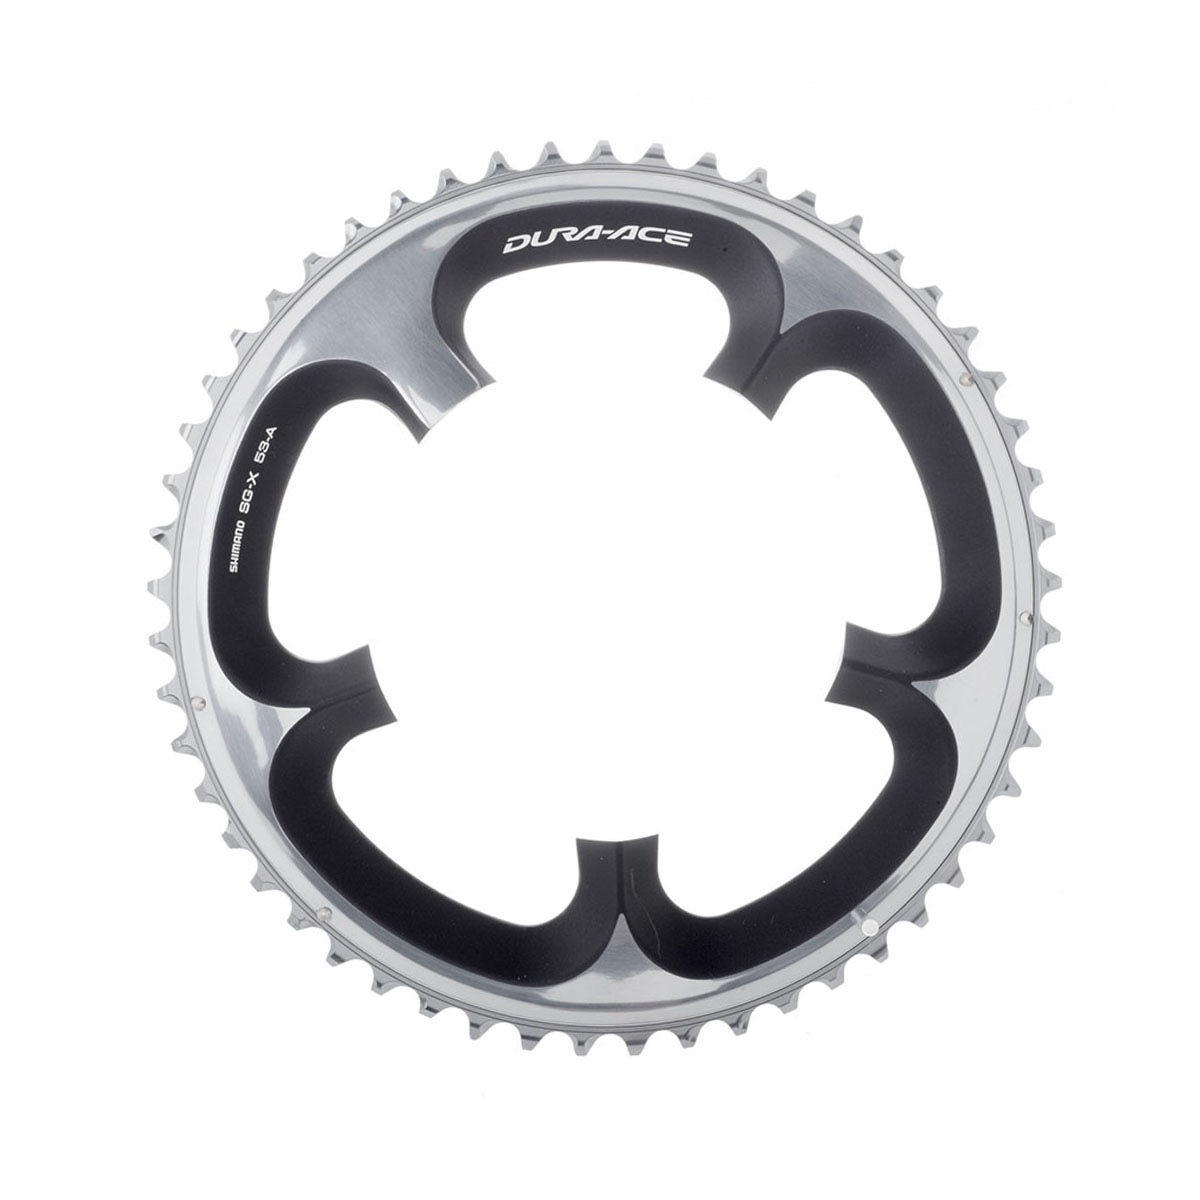 (7900) Dura-Ace Chainring